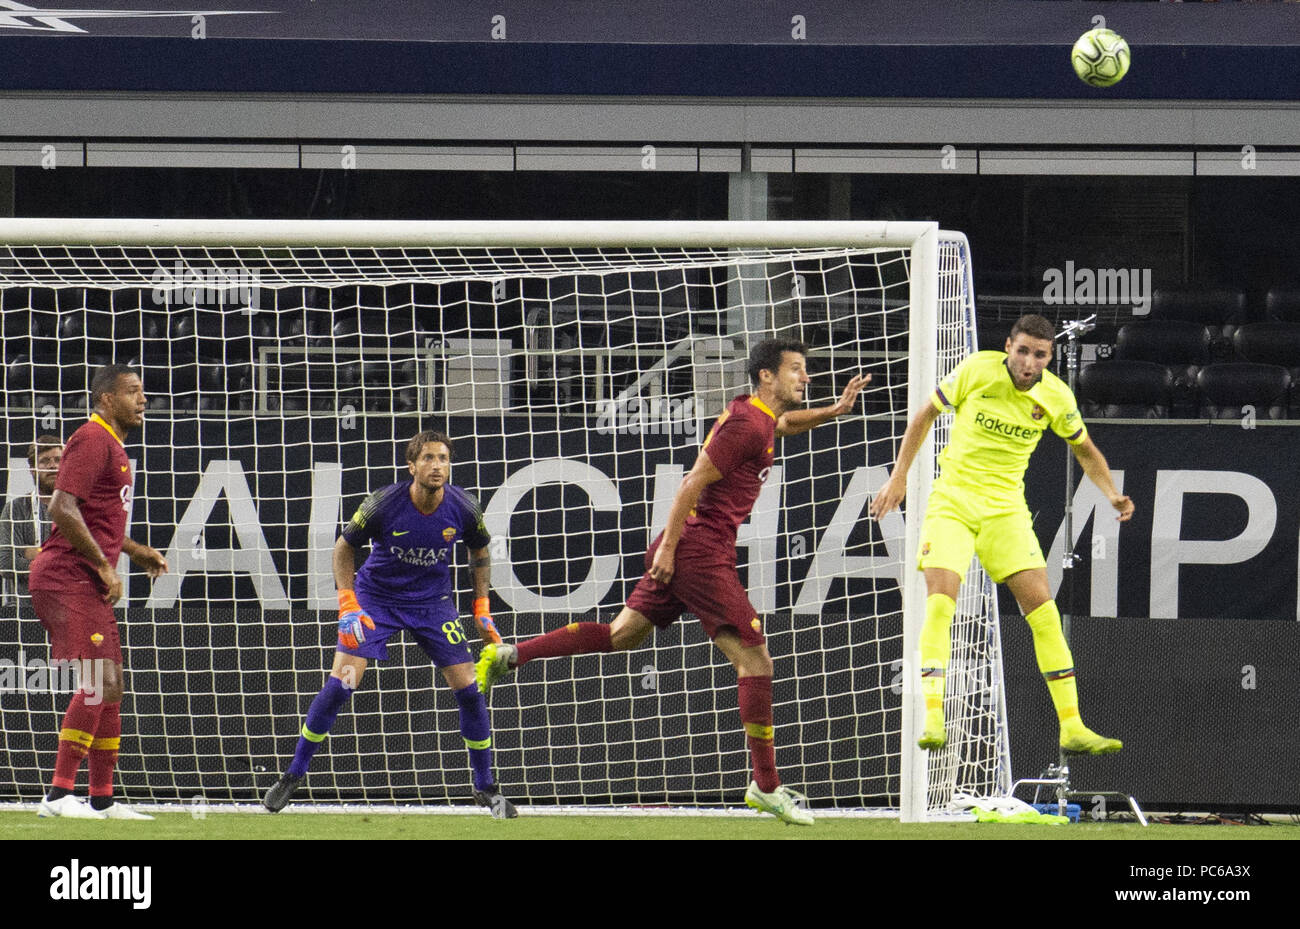 Arlington, Texas, U.S.A. 31st July, 2018. FC Barcelona attempting to ...